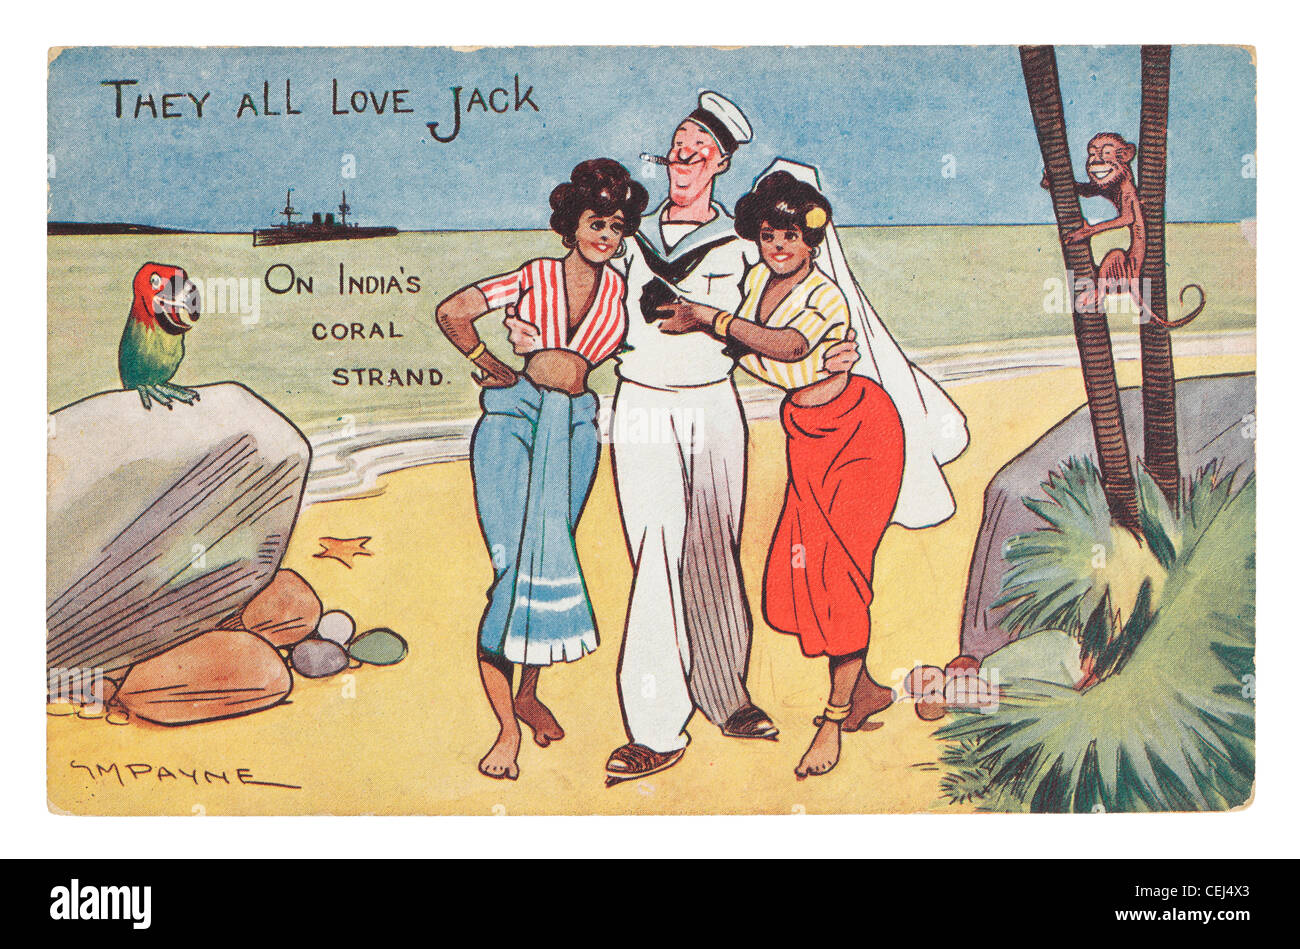 Old Postcard by G M Payne captioned 'They All Love Jack' published by Gale & Polden. - Stock Image